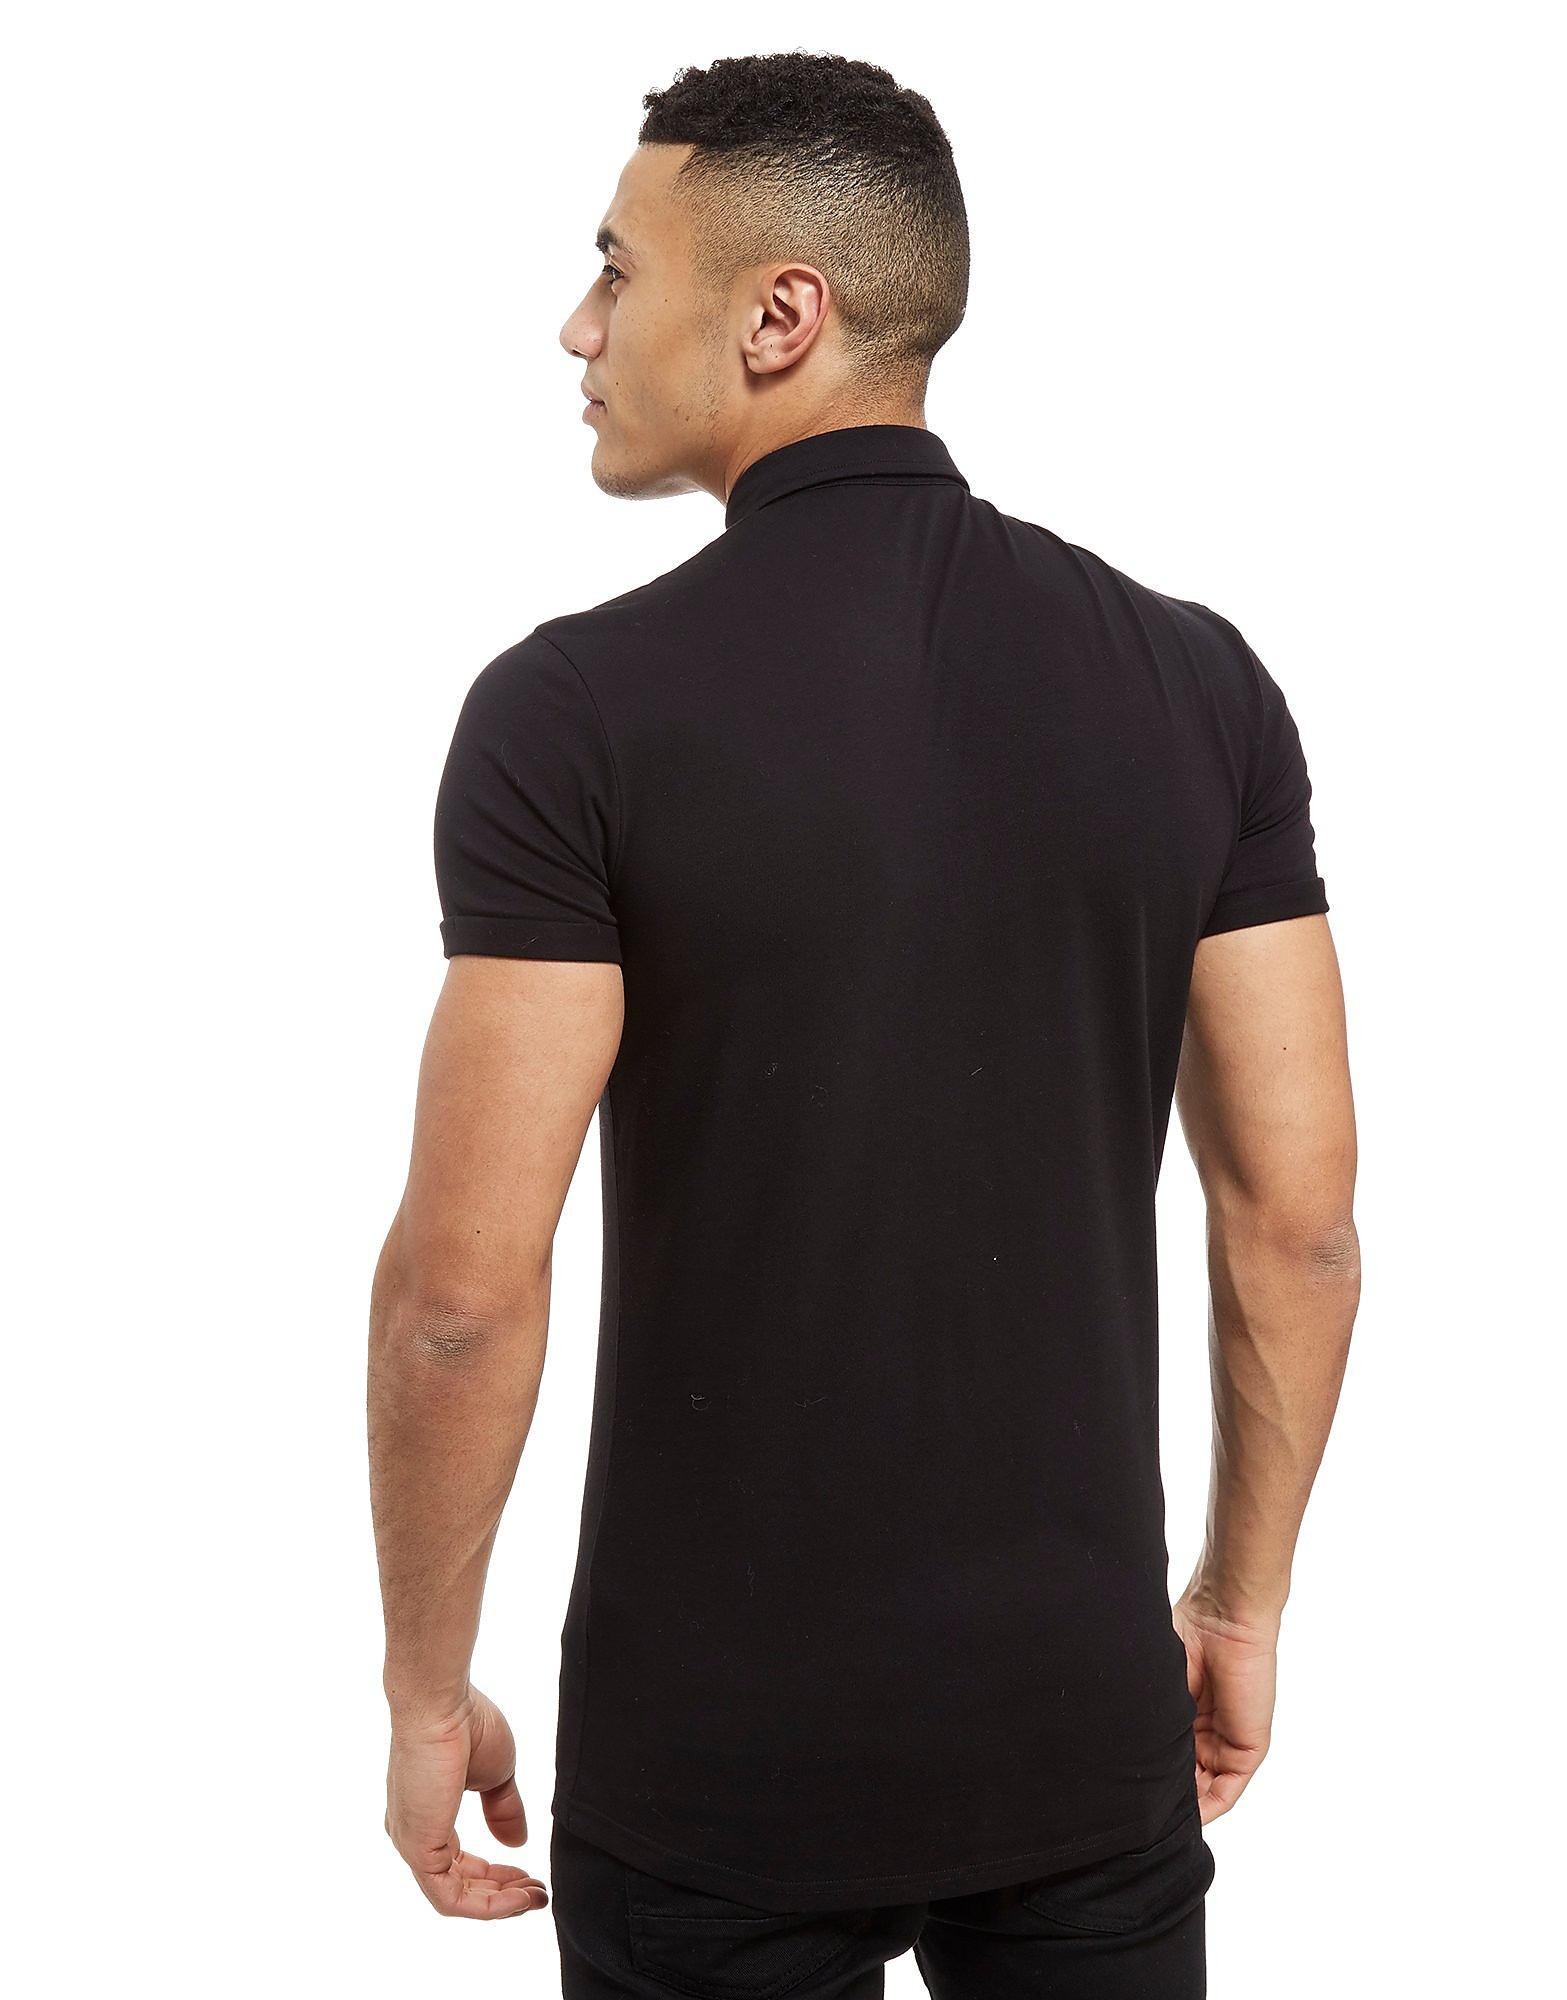 Gym King Core Short Sleeve Shirt